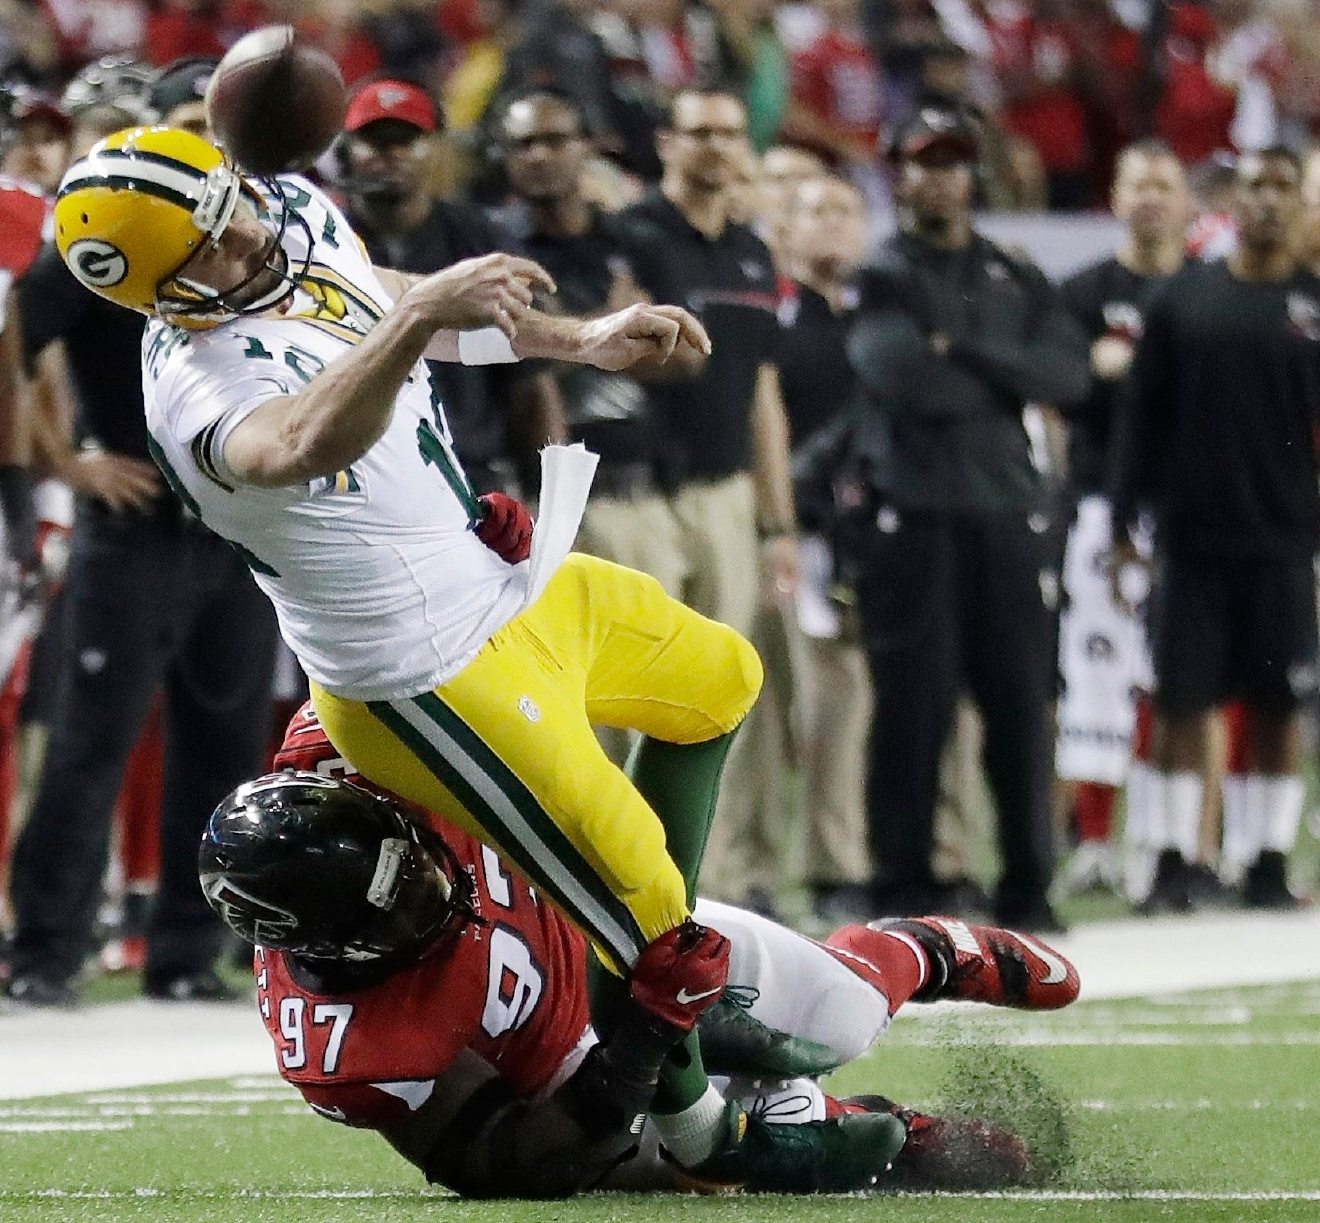 Green Bay Packers' Aaron Rodgers throws while in the grasp of Atlanta Falcons' Grady Jarrett during the second half of the NFC championship game, Sunday, Jan. 22, 2017, in Atlanta. (AP Photo/David Goldman)